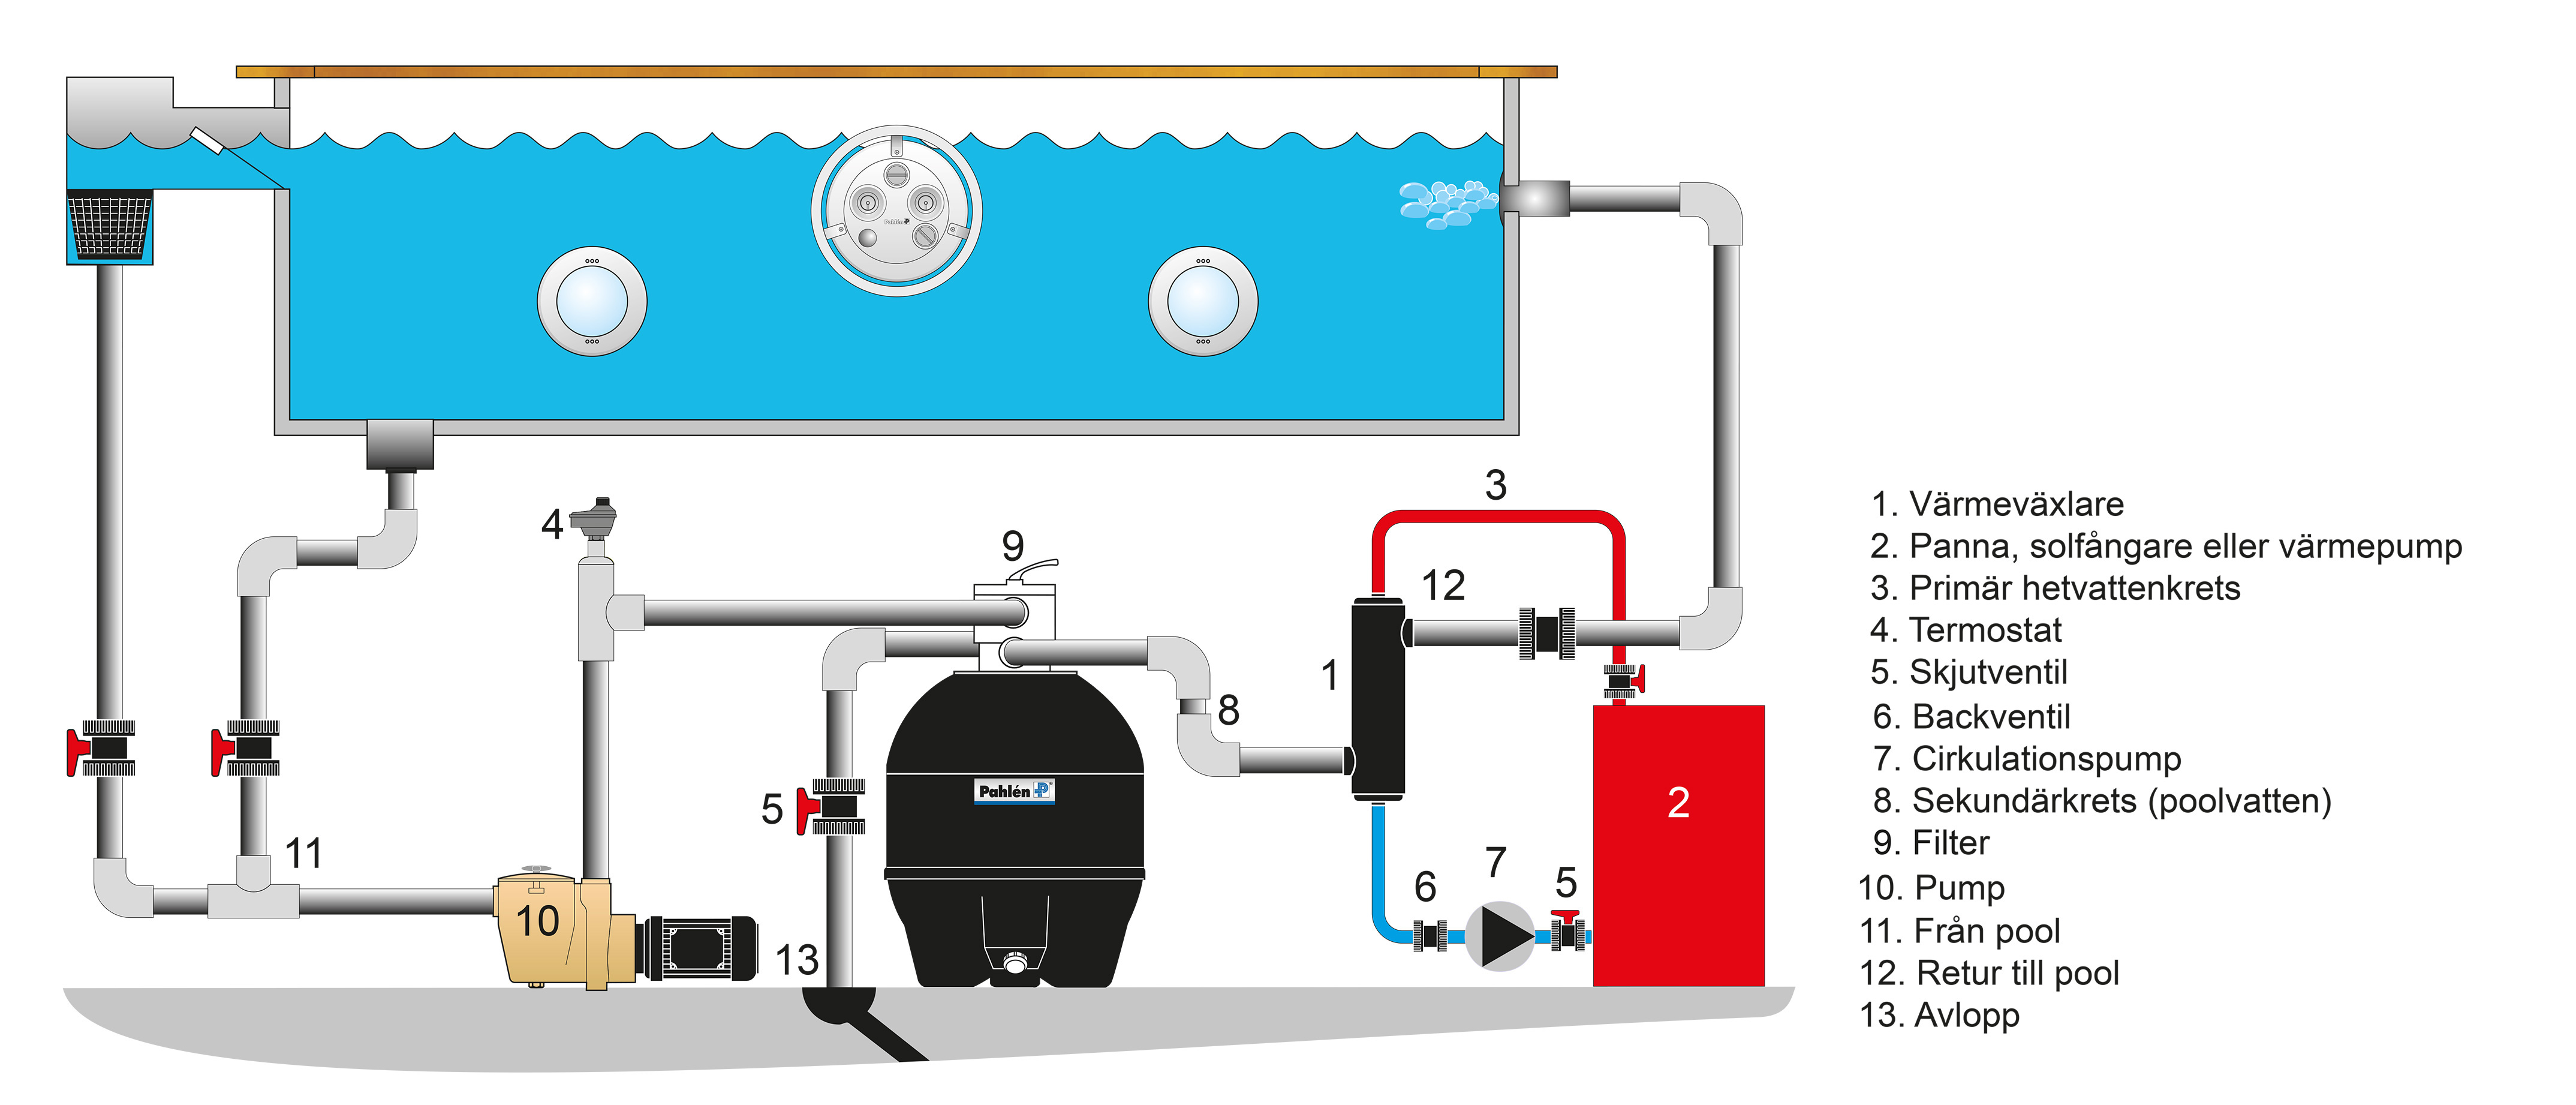 swimming pool sand filter diagram arm bones and muscles schematic heat exchanger electric heater